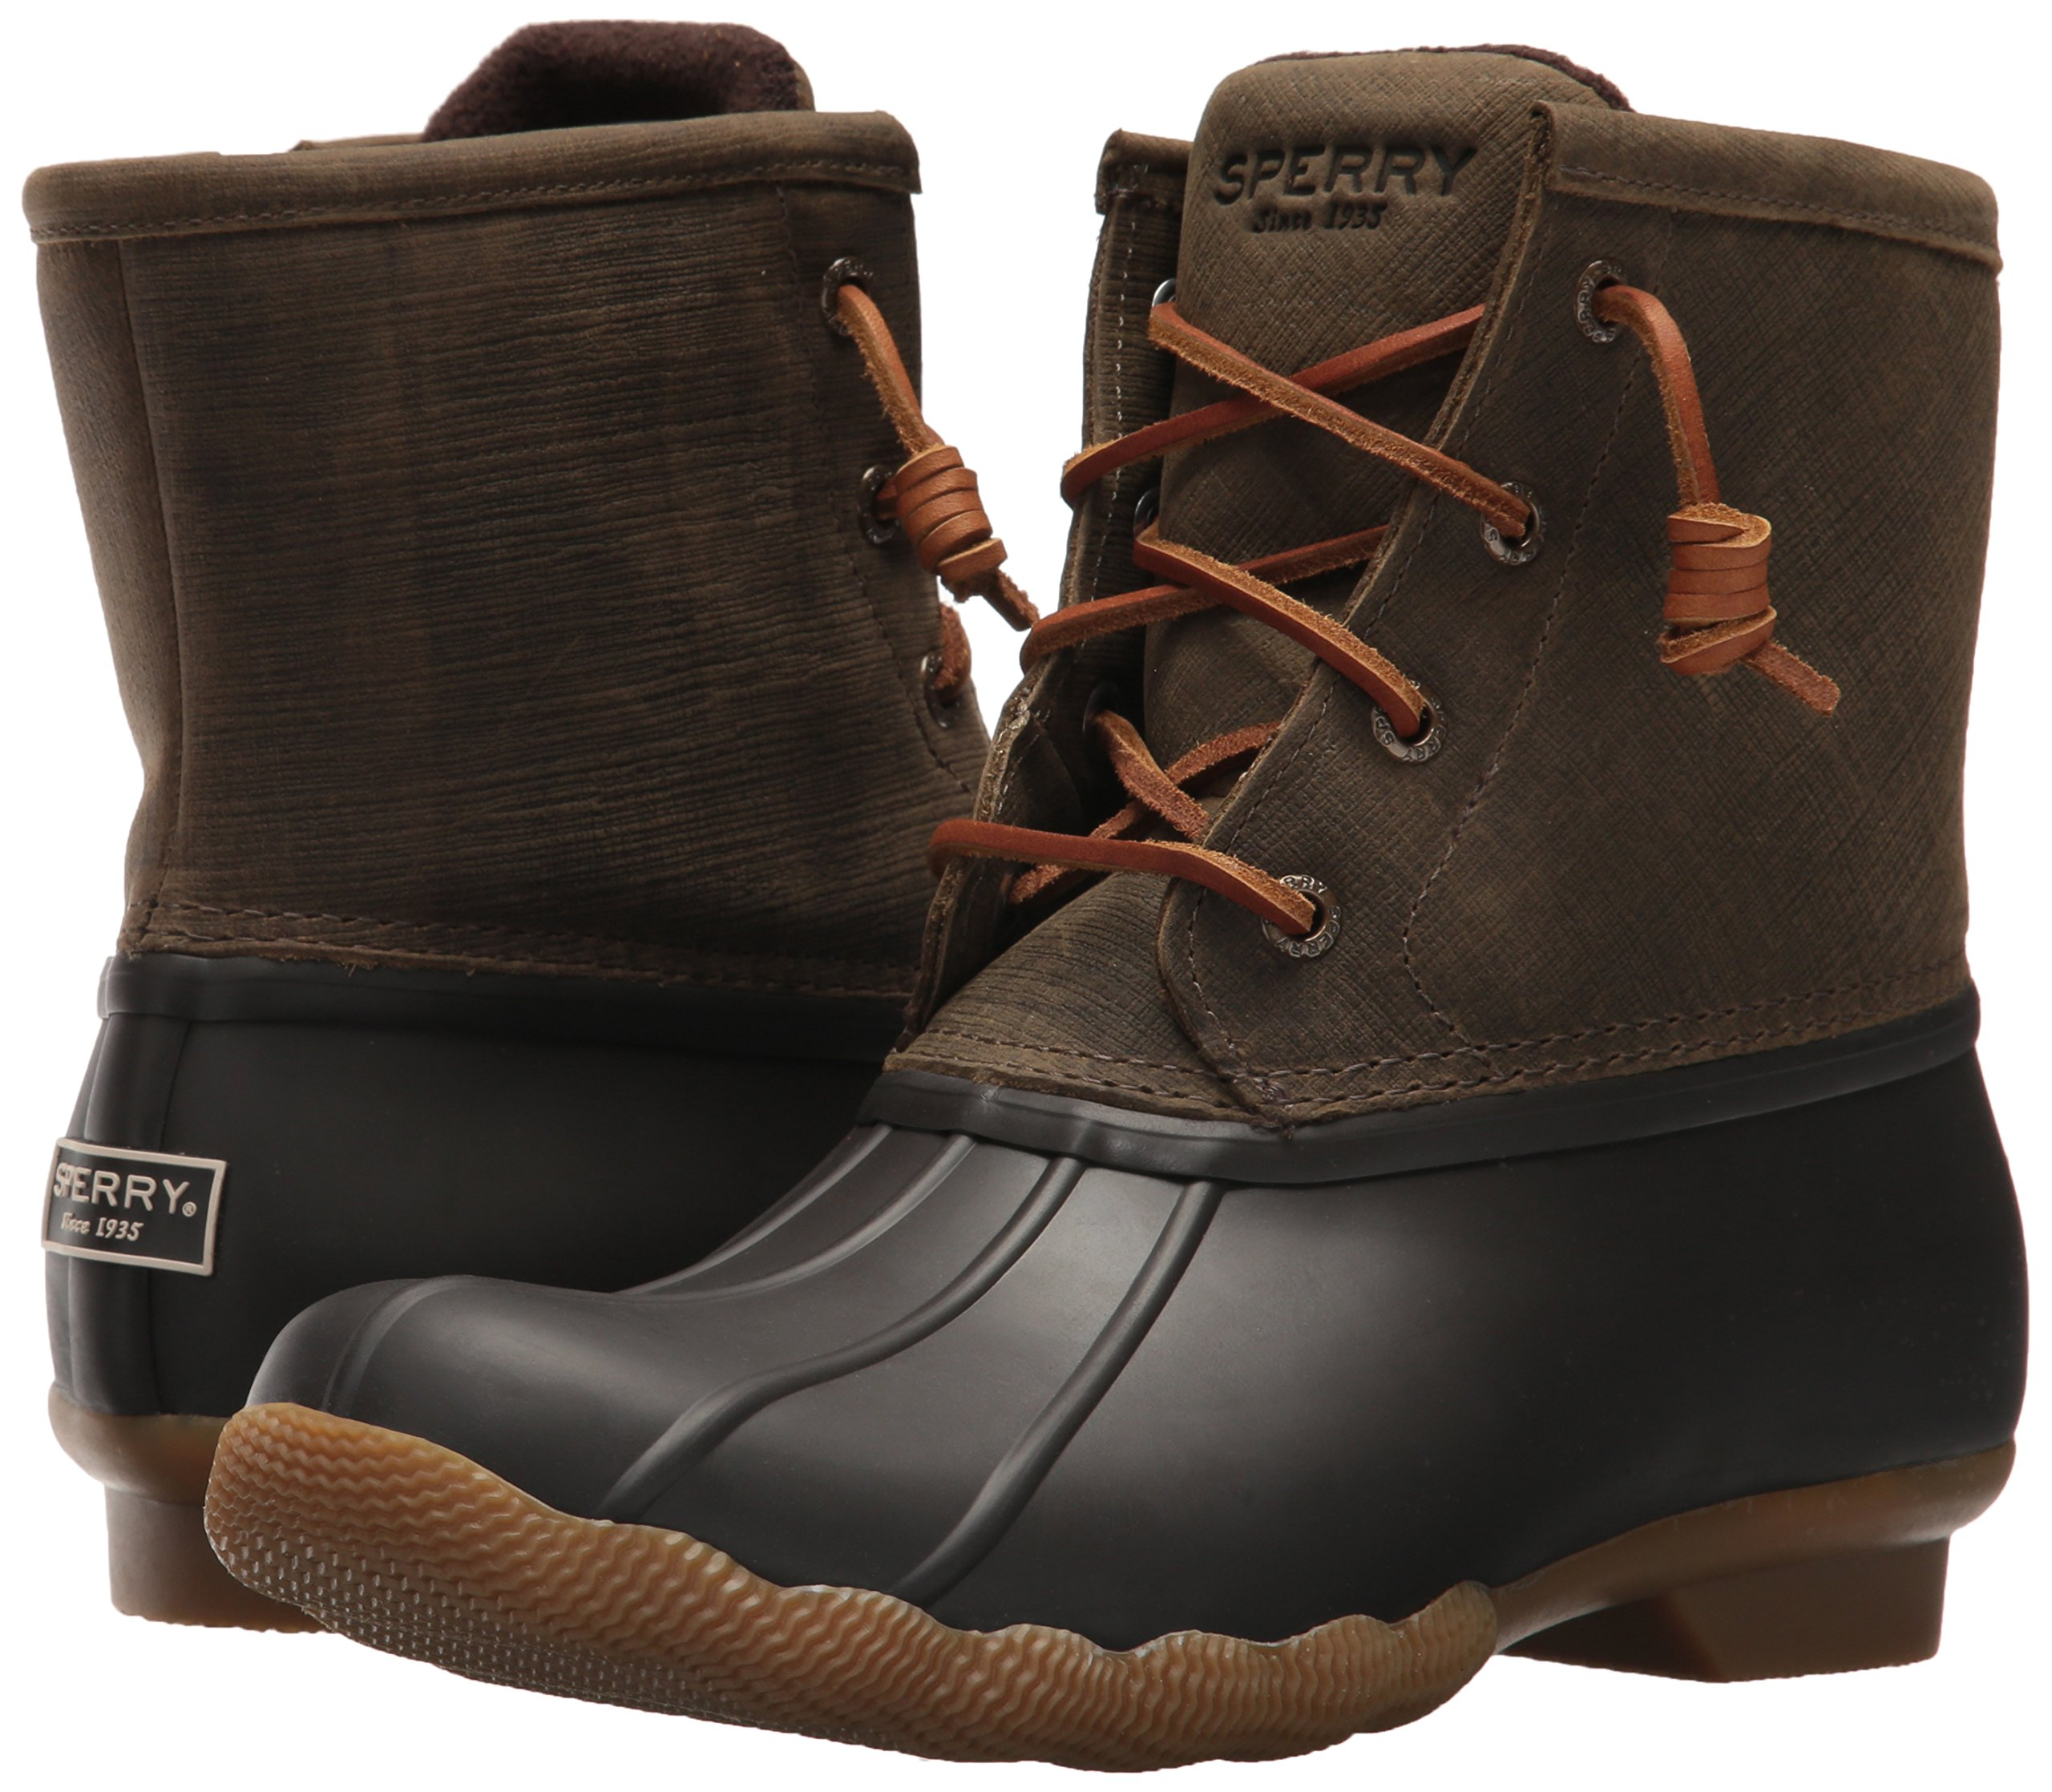 Sperry Top-Sider Women's Saltwater Rain Boot, Brown/Olive, 11 Medium US by Sperry Top-Sider (Image #6)